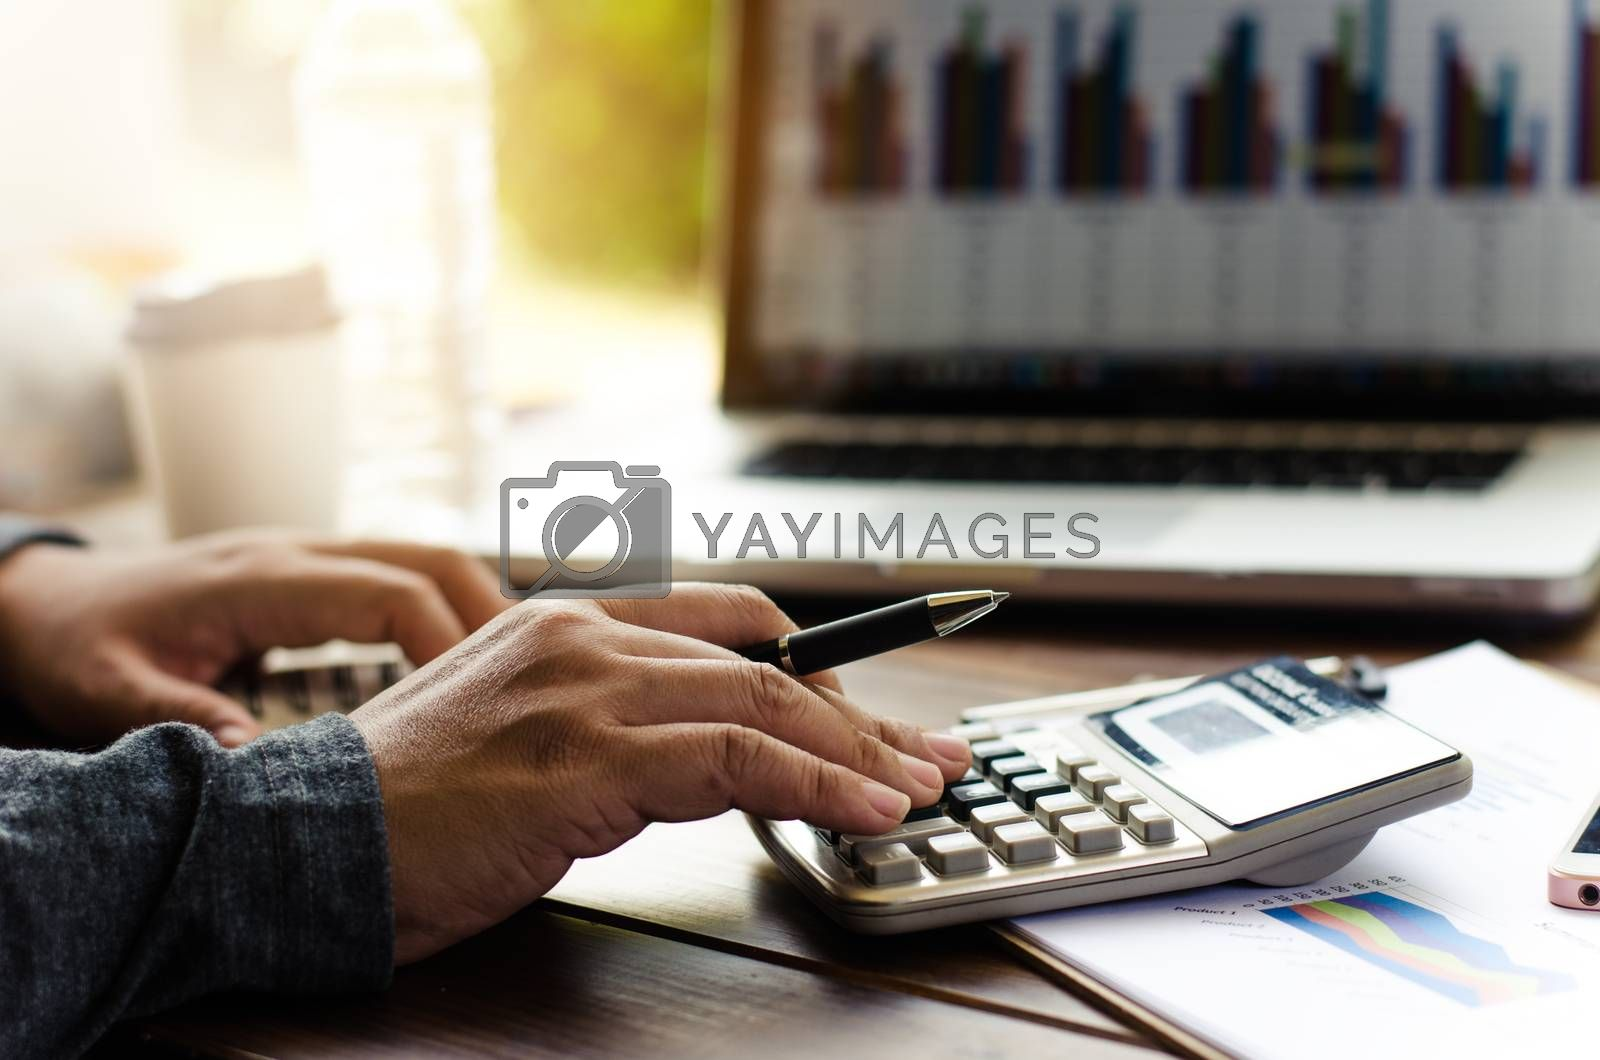 Working on a desk numerical analysis, financial accounting. Graphing Calculator on laptop